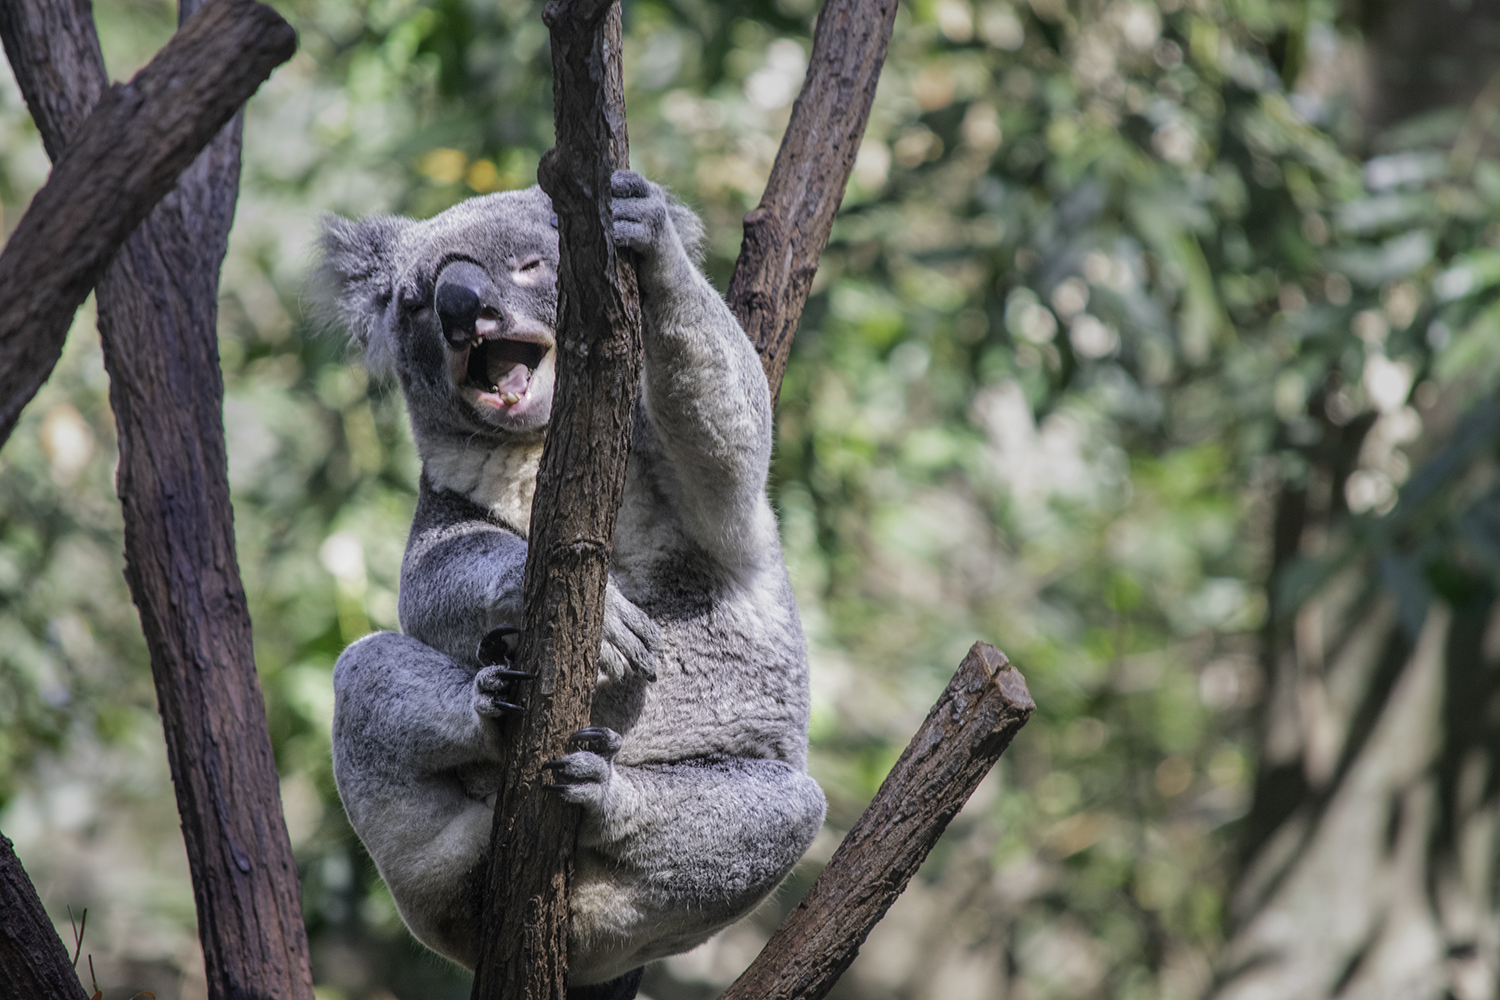 A laughing koala, perched  in the fork of tree.